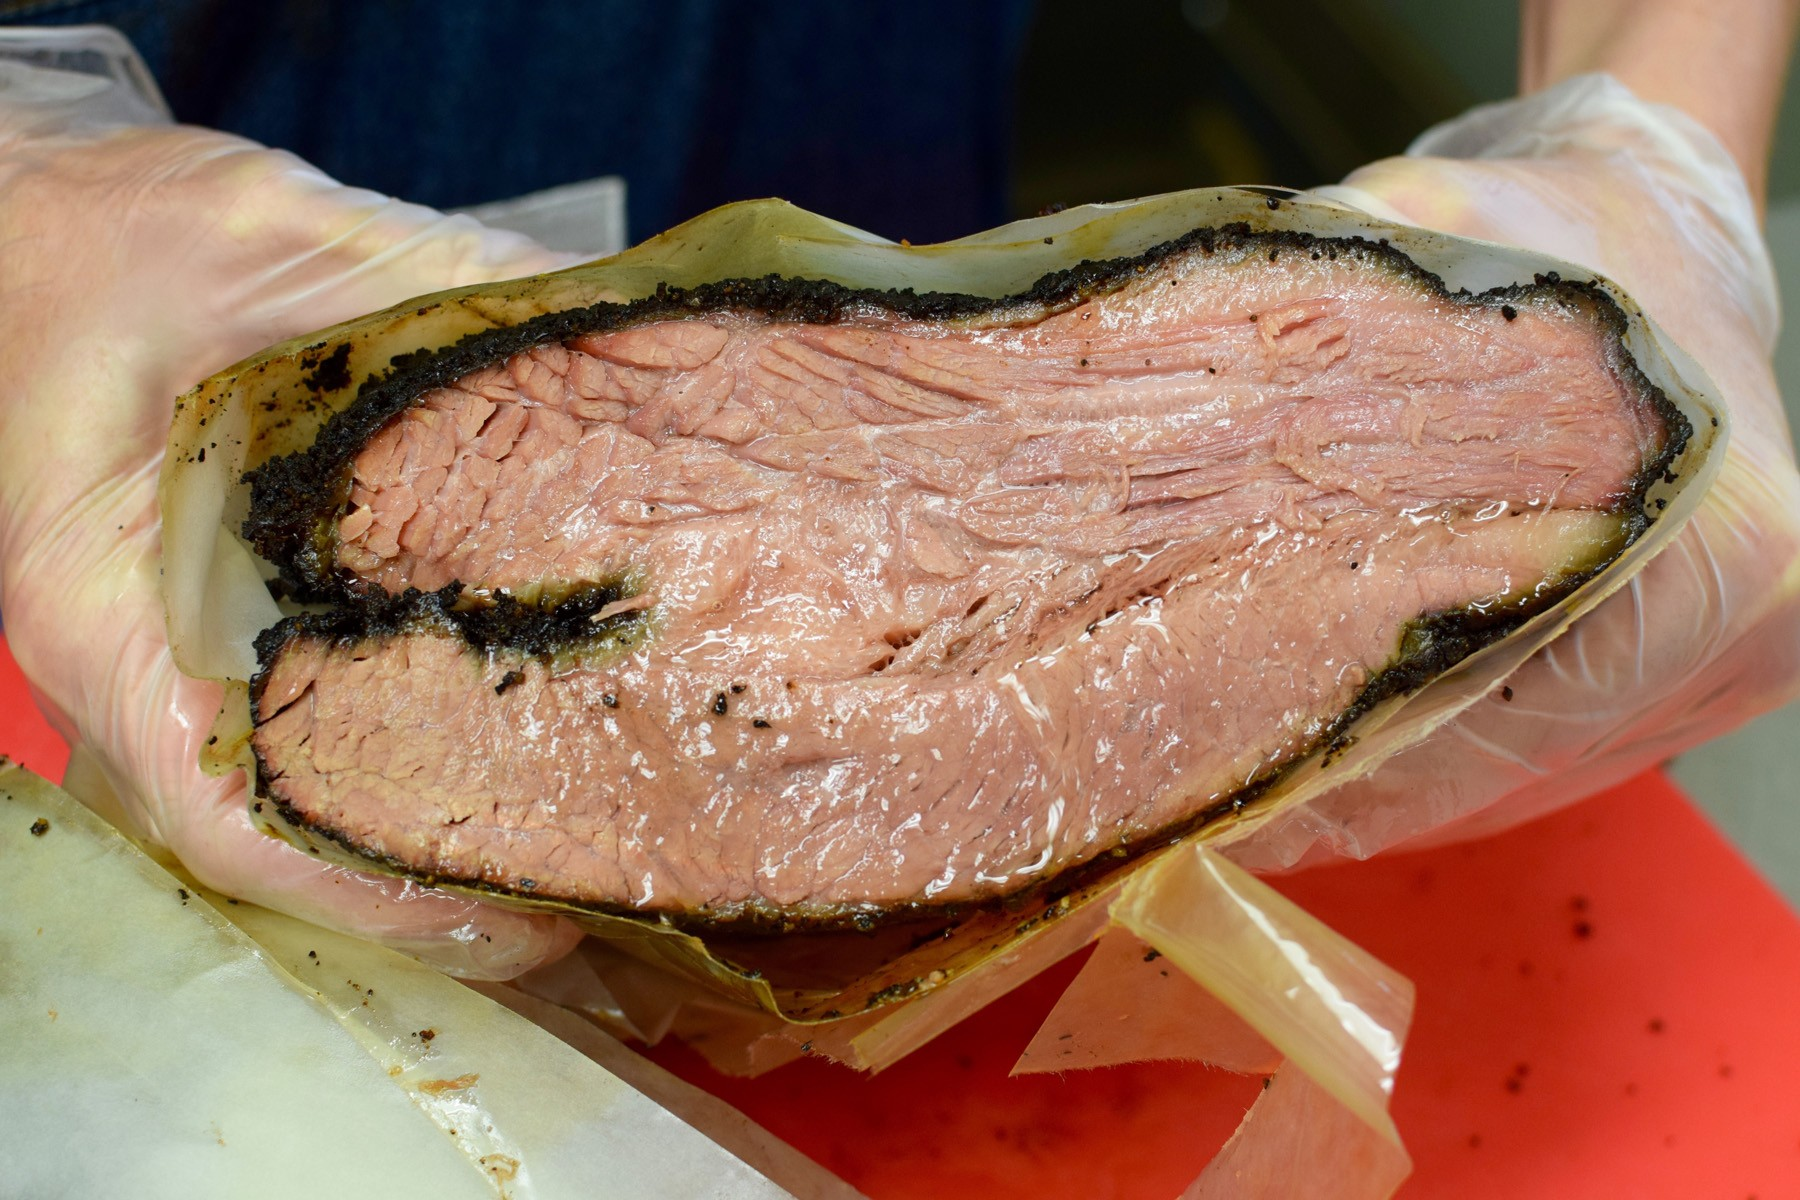 ray_holding_his_brisket_juicy_as_hell - 1